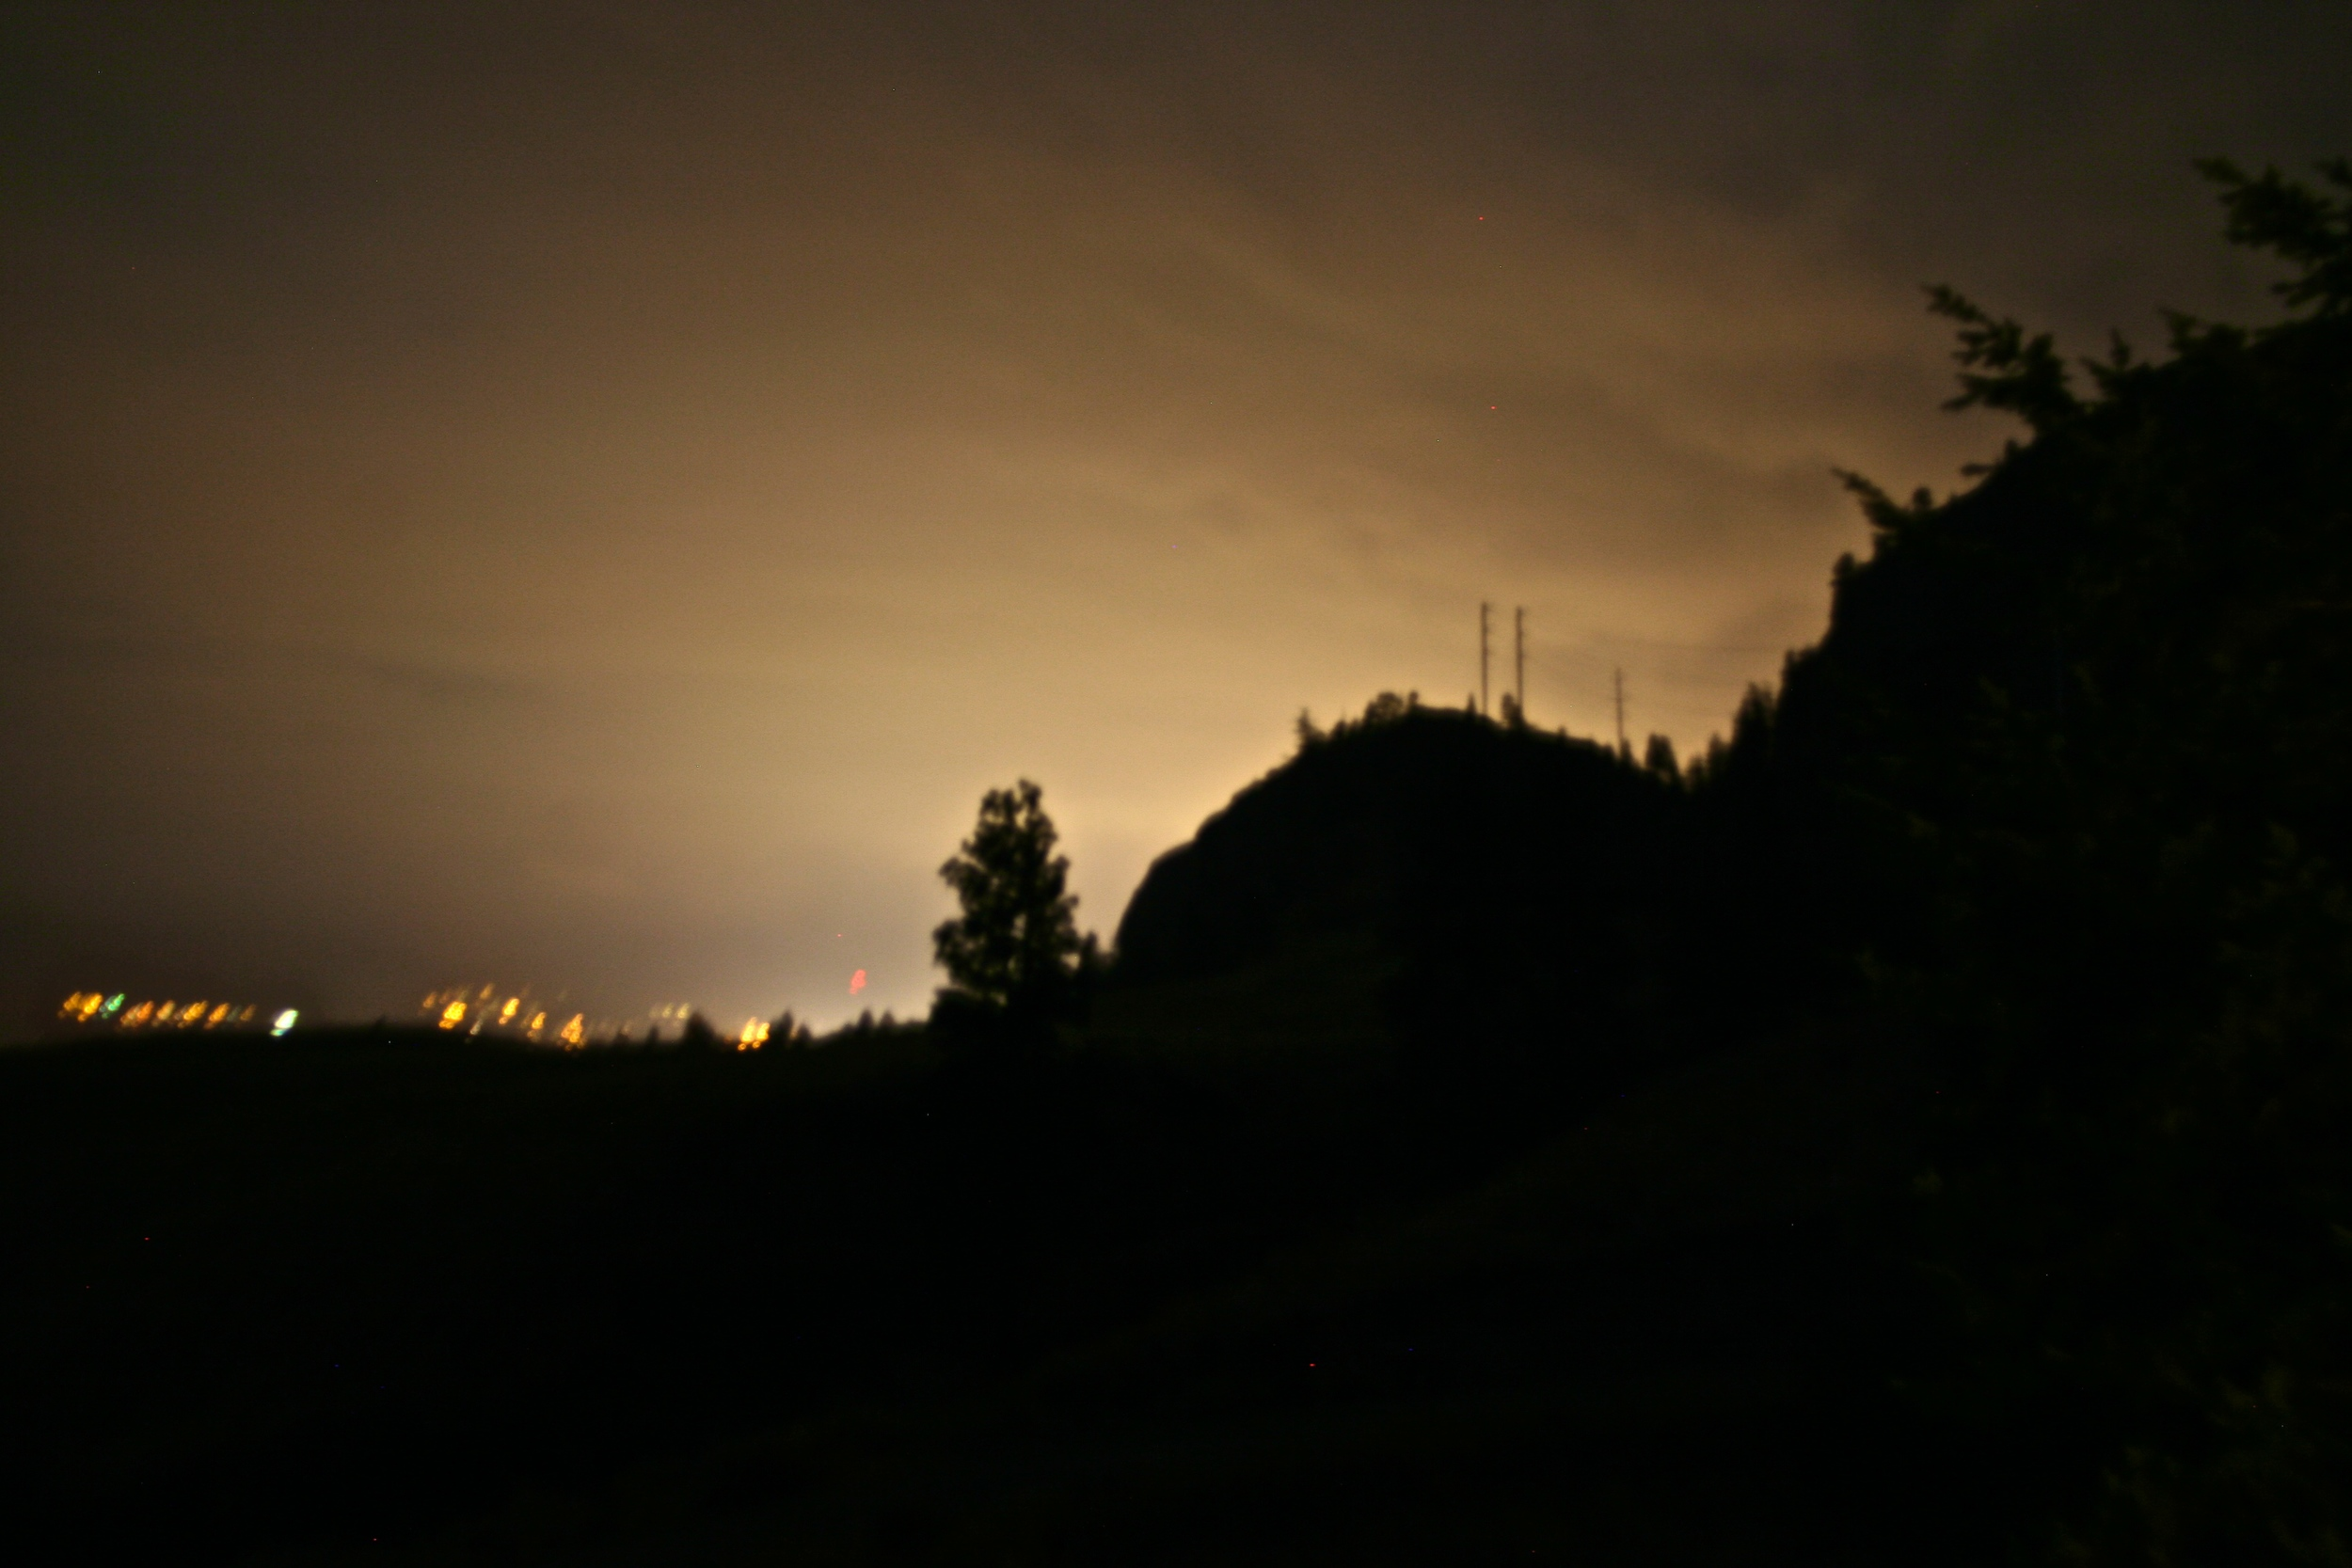 The evening lights of Penticton shining over the Bluffs at the winery.